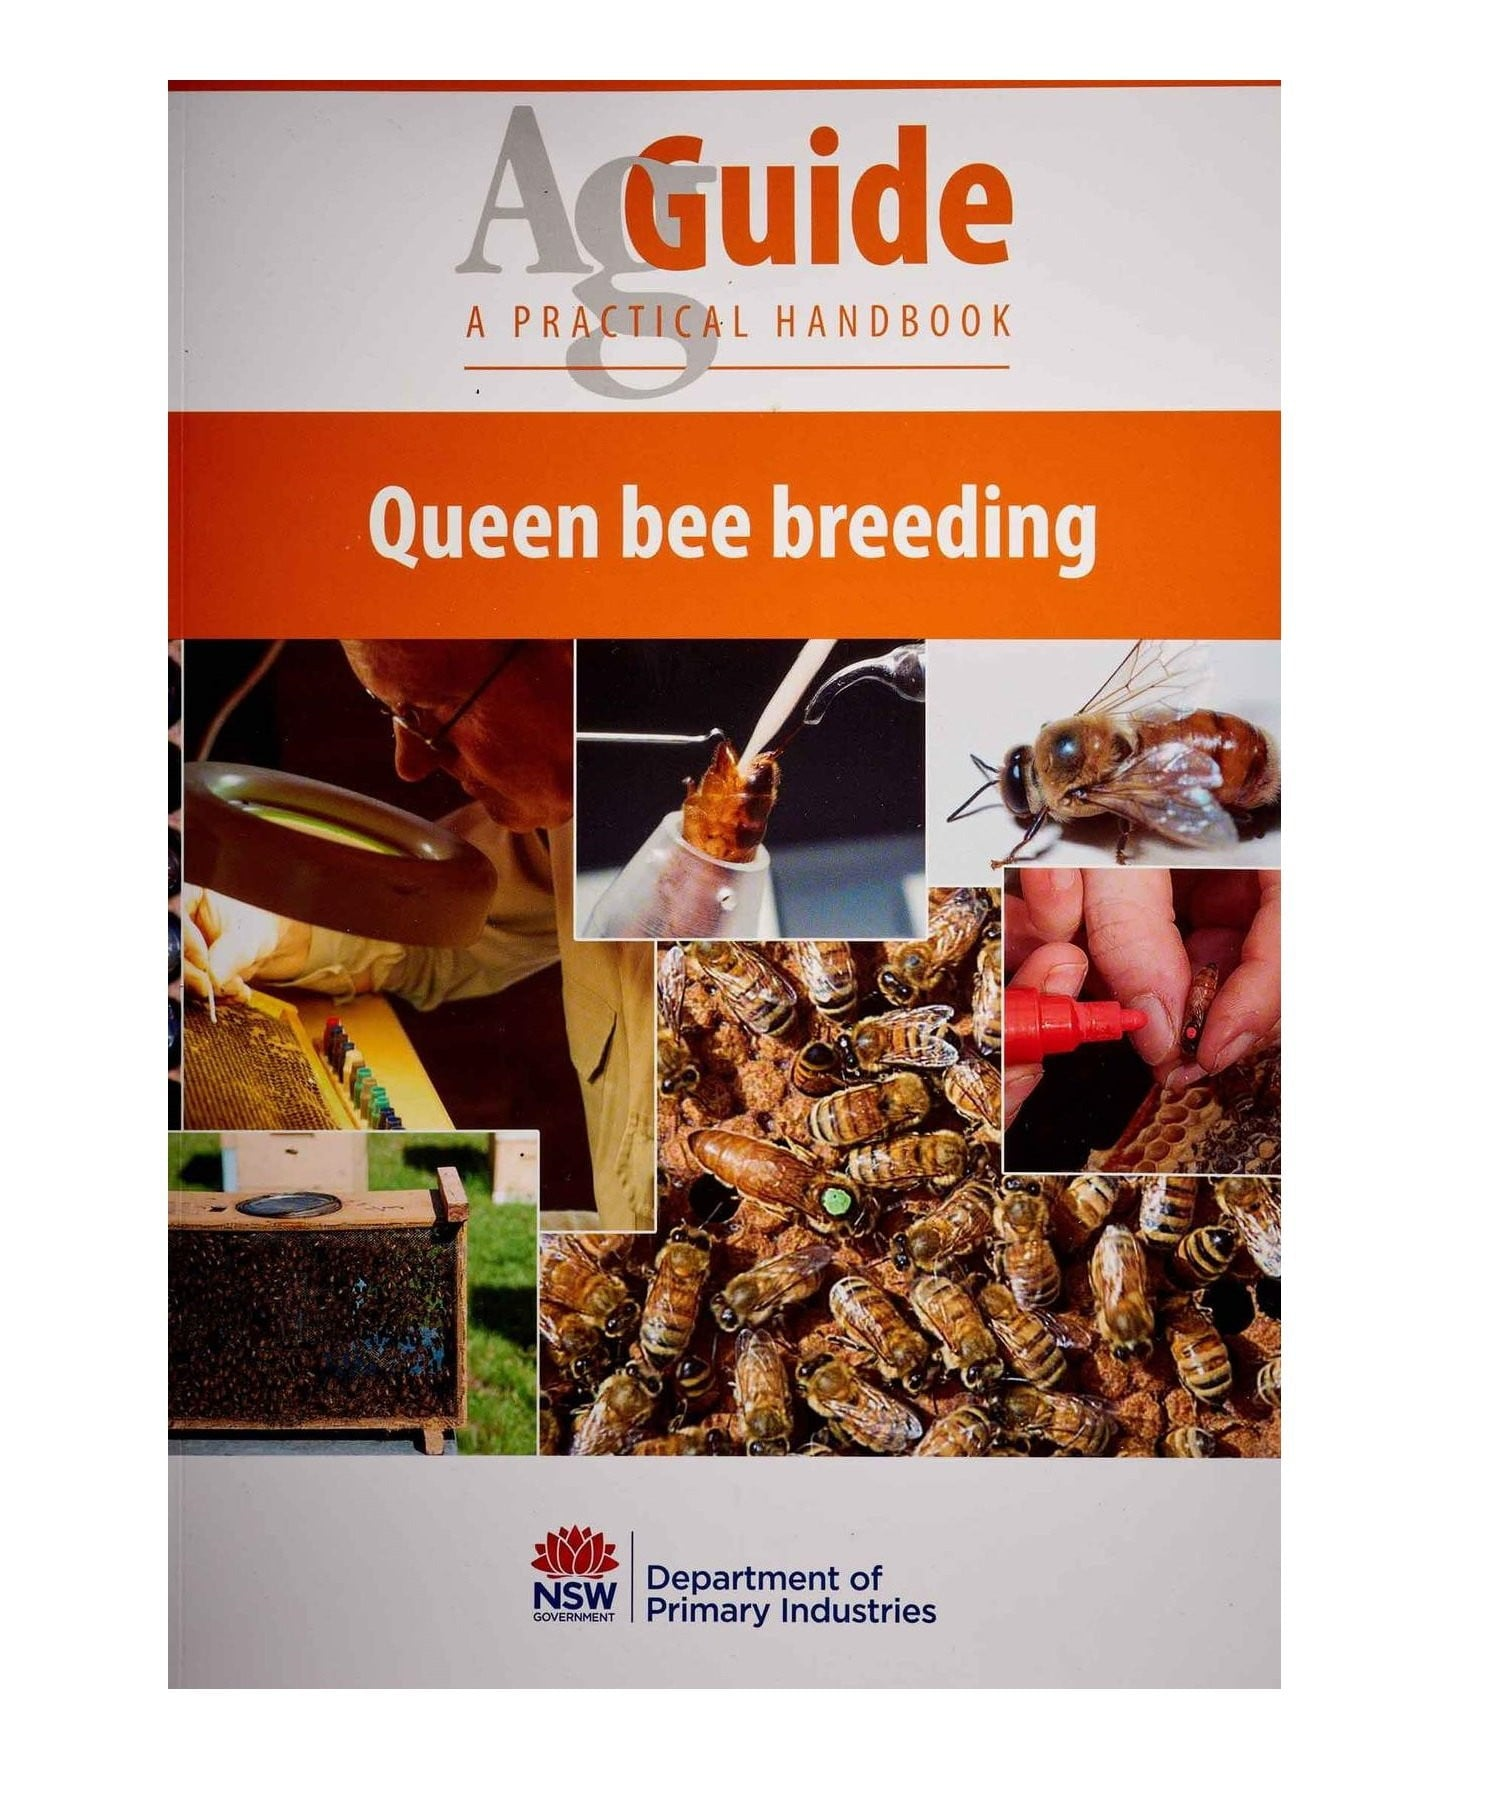 Queen Bee Breeding,Beekeeping,beekeeping gear,oz armour